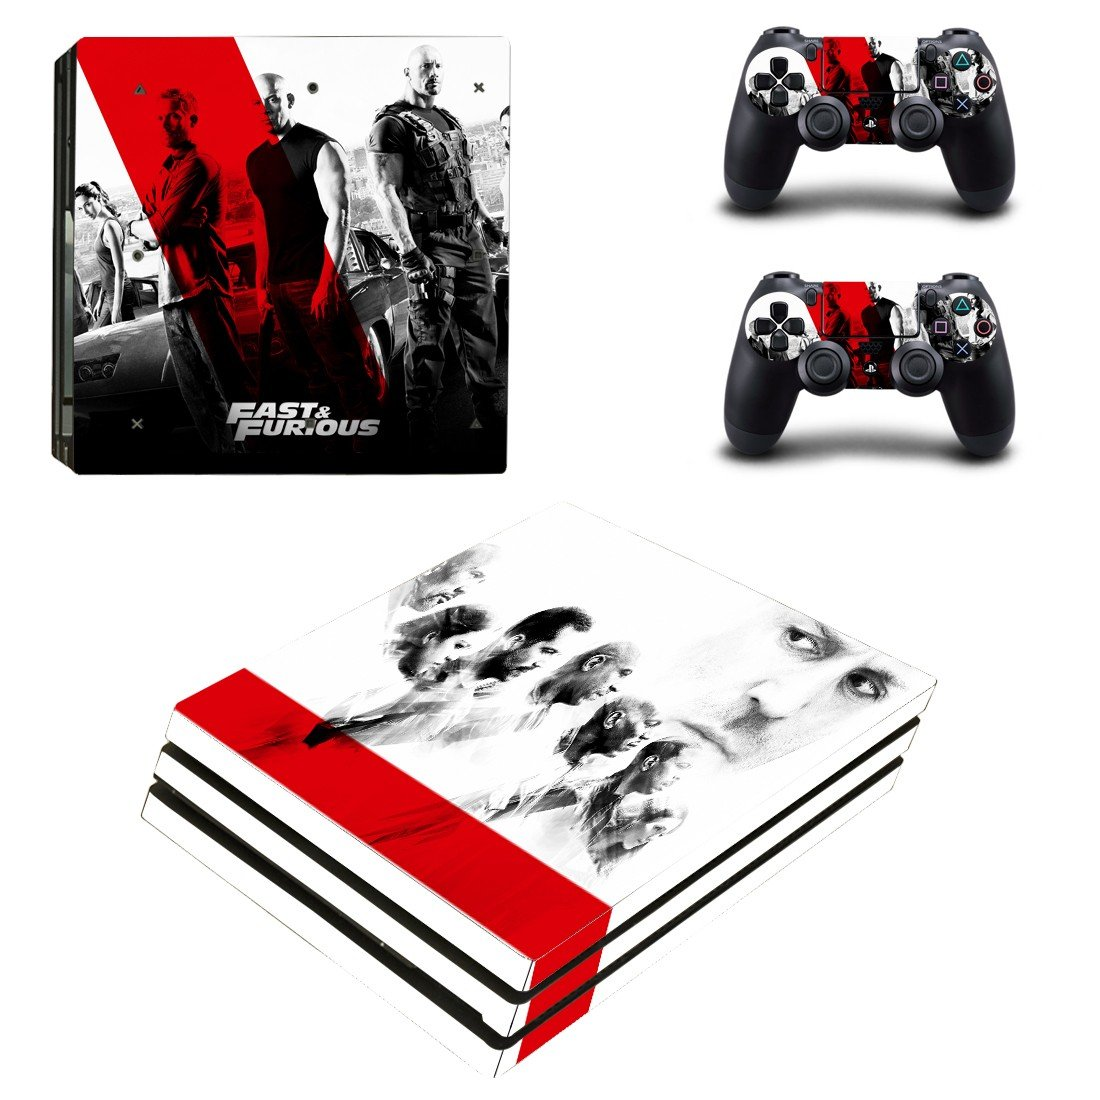 Fast & Furious ps4 pro skin decal for console and controllers